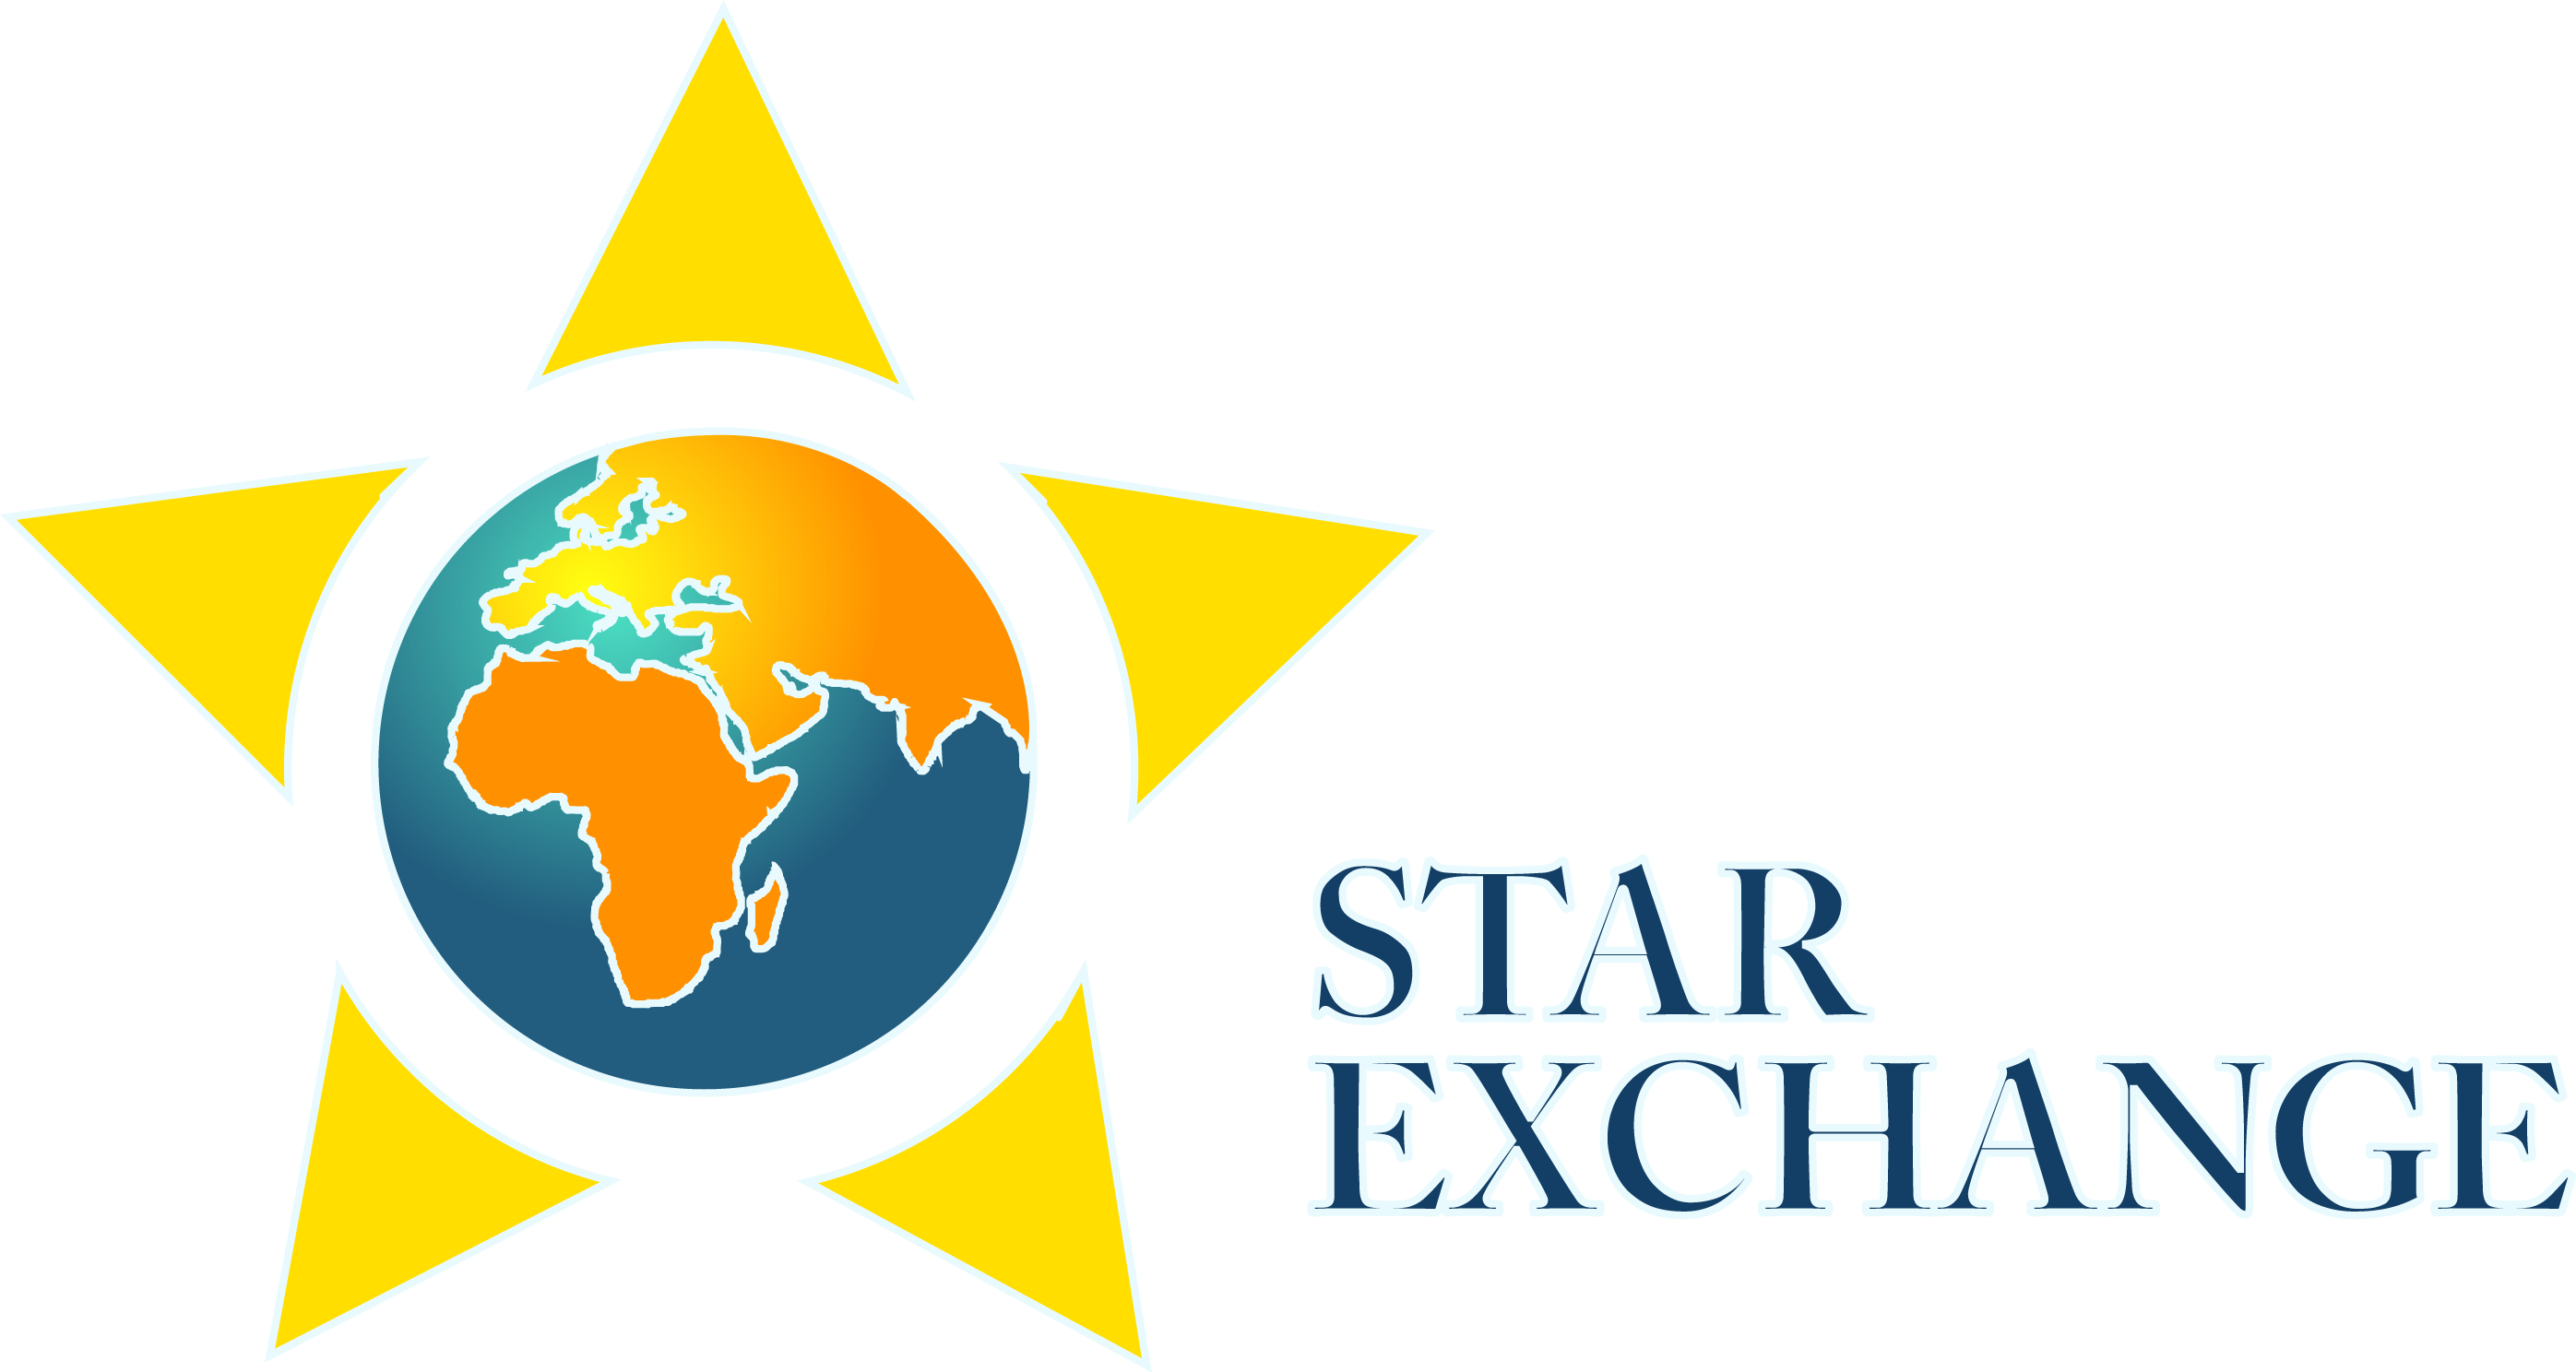 Star Exchange